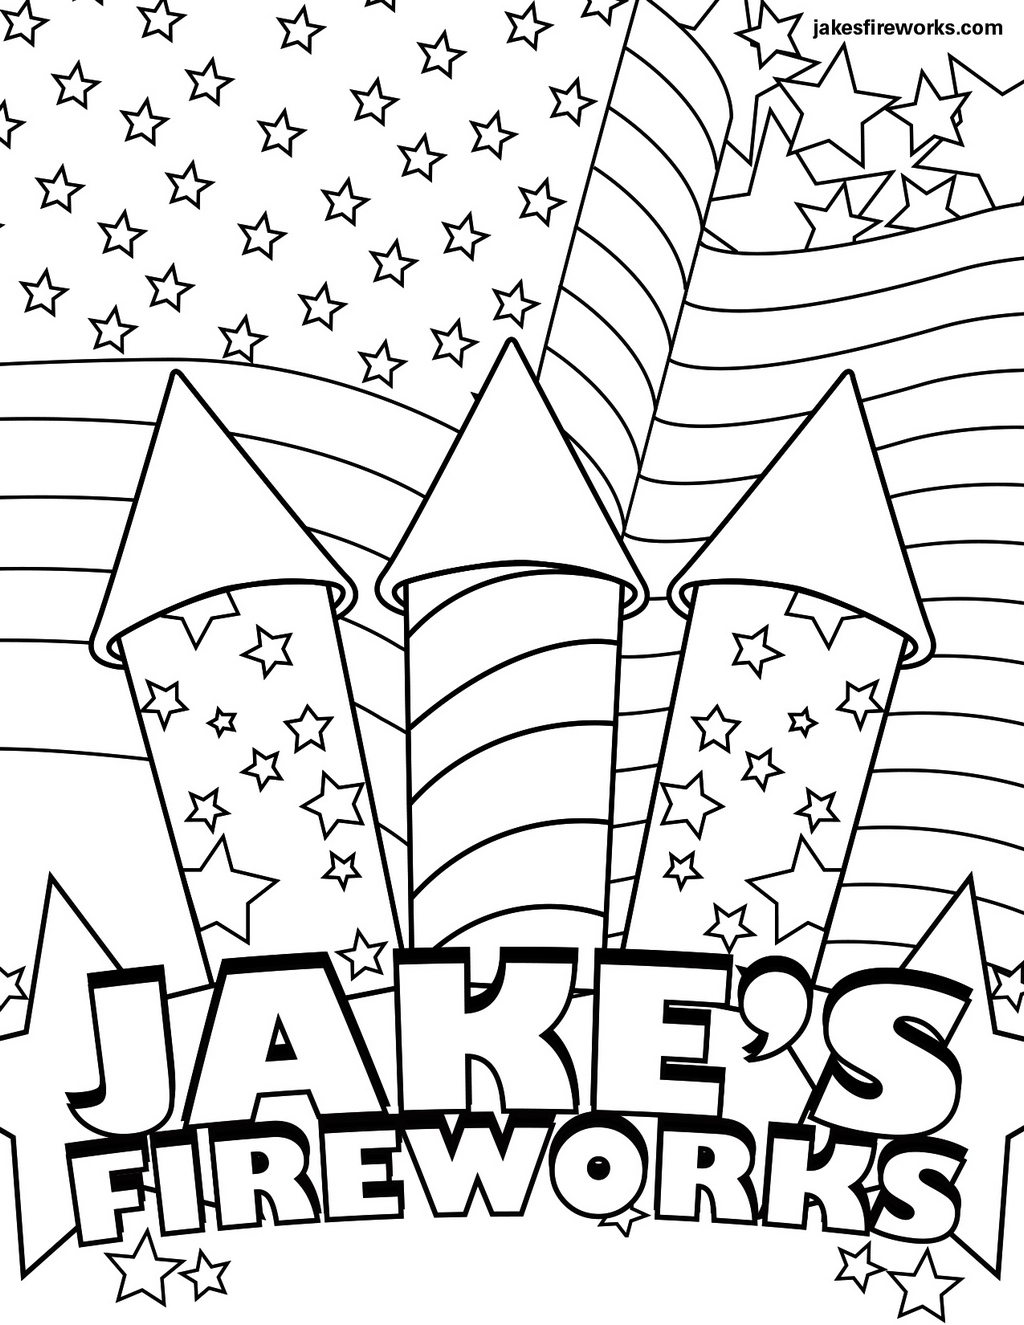 fireworks coloring and drawing page